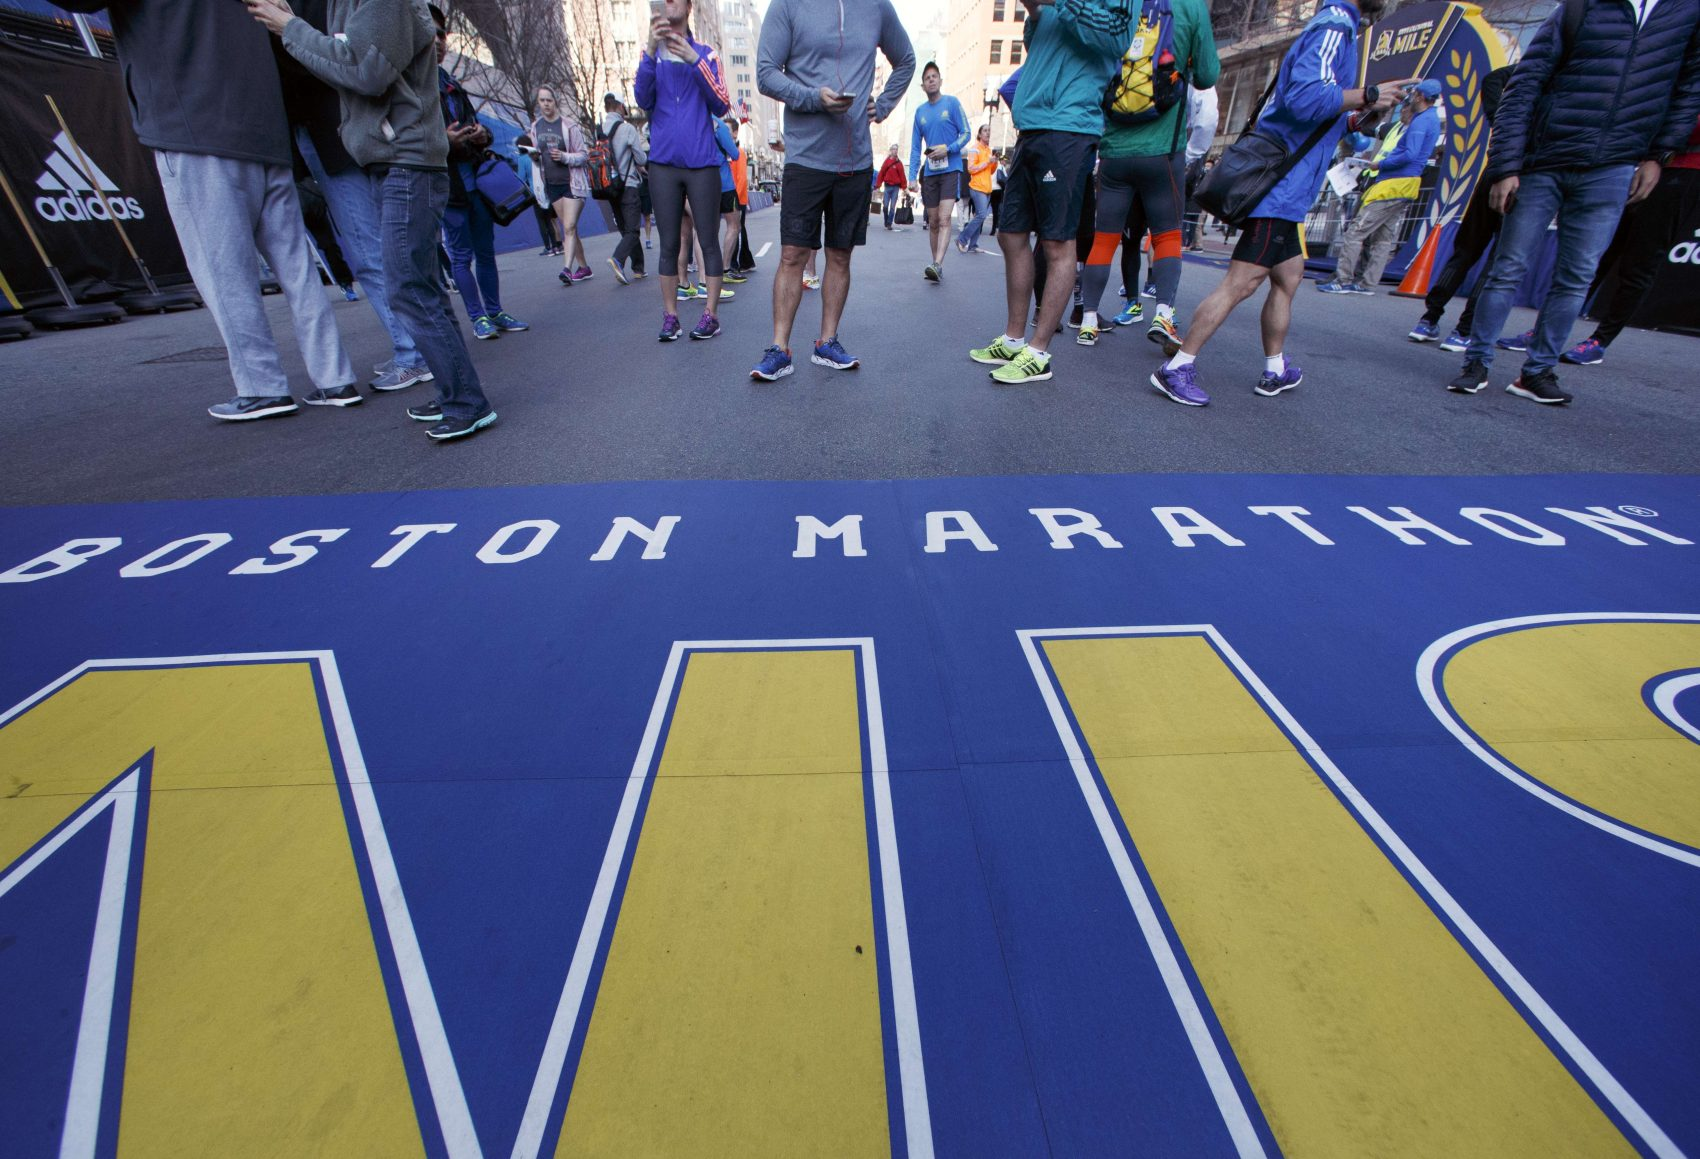 People gather at the Boston Marathon finish line on Saturday. (Michael Dwyer/AP)